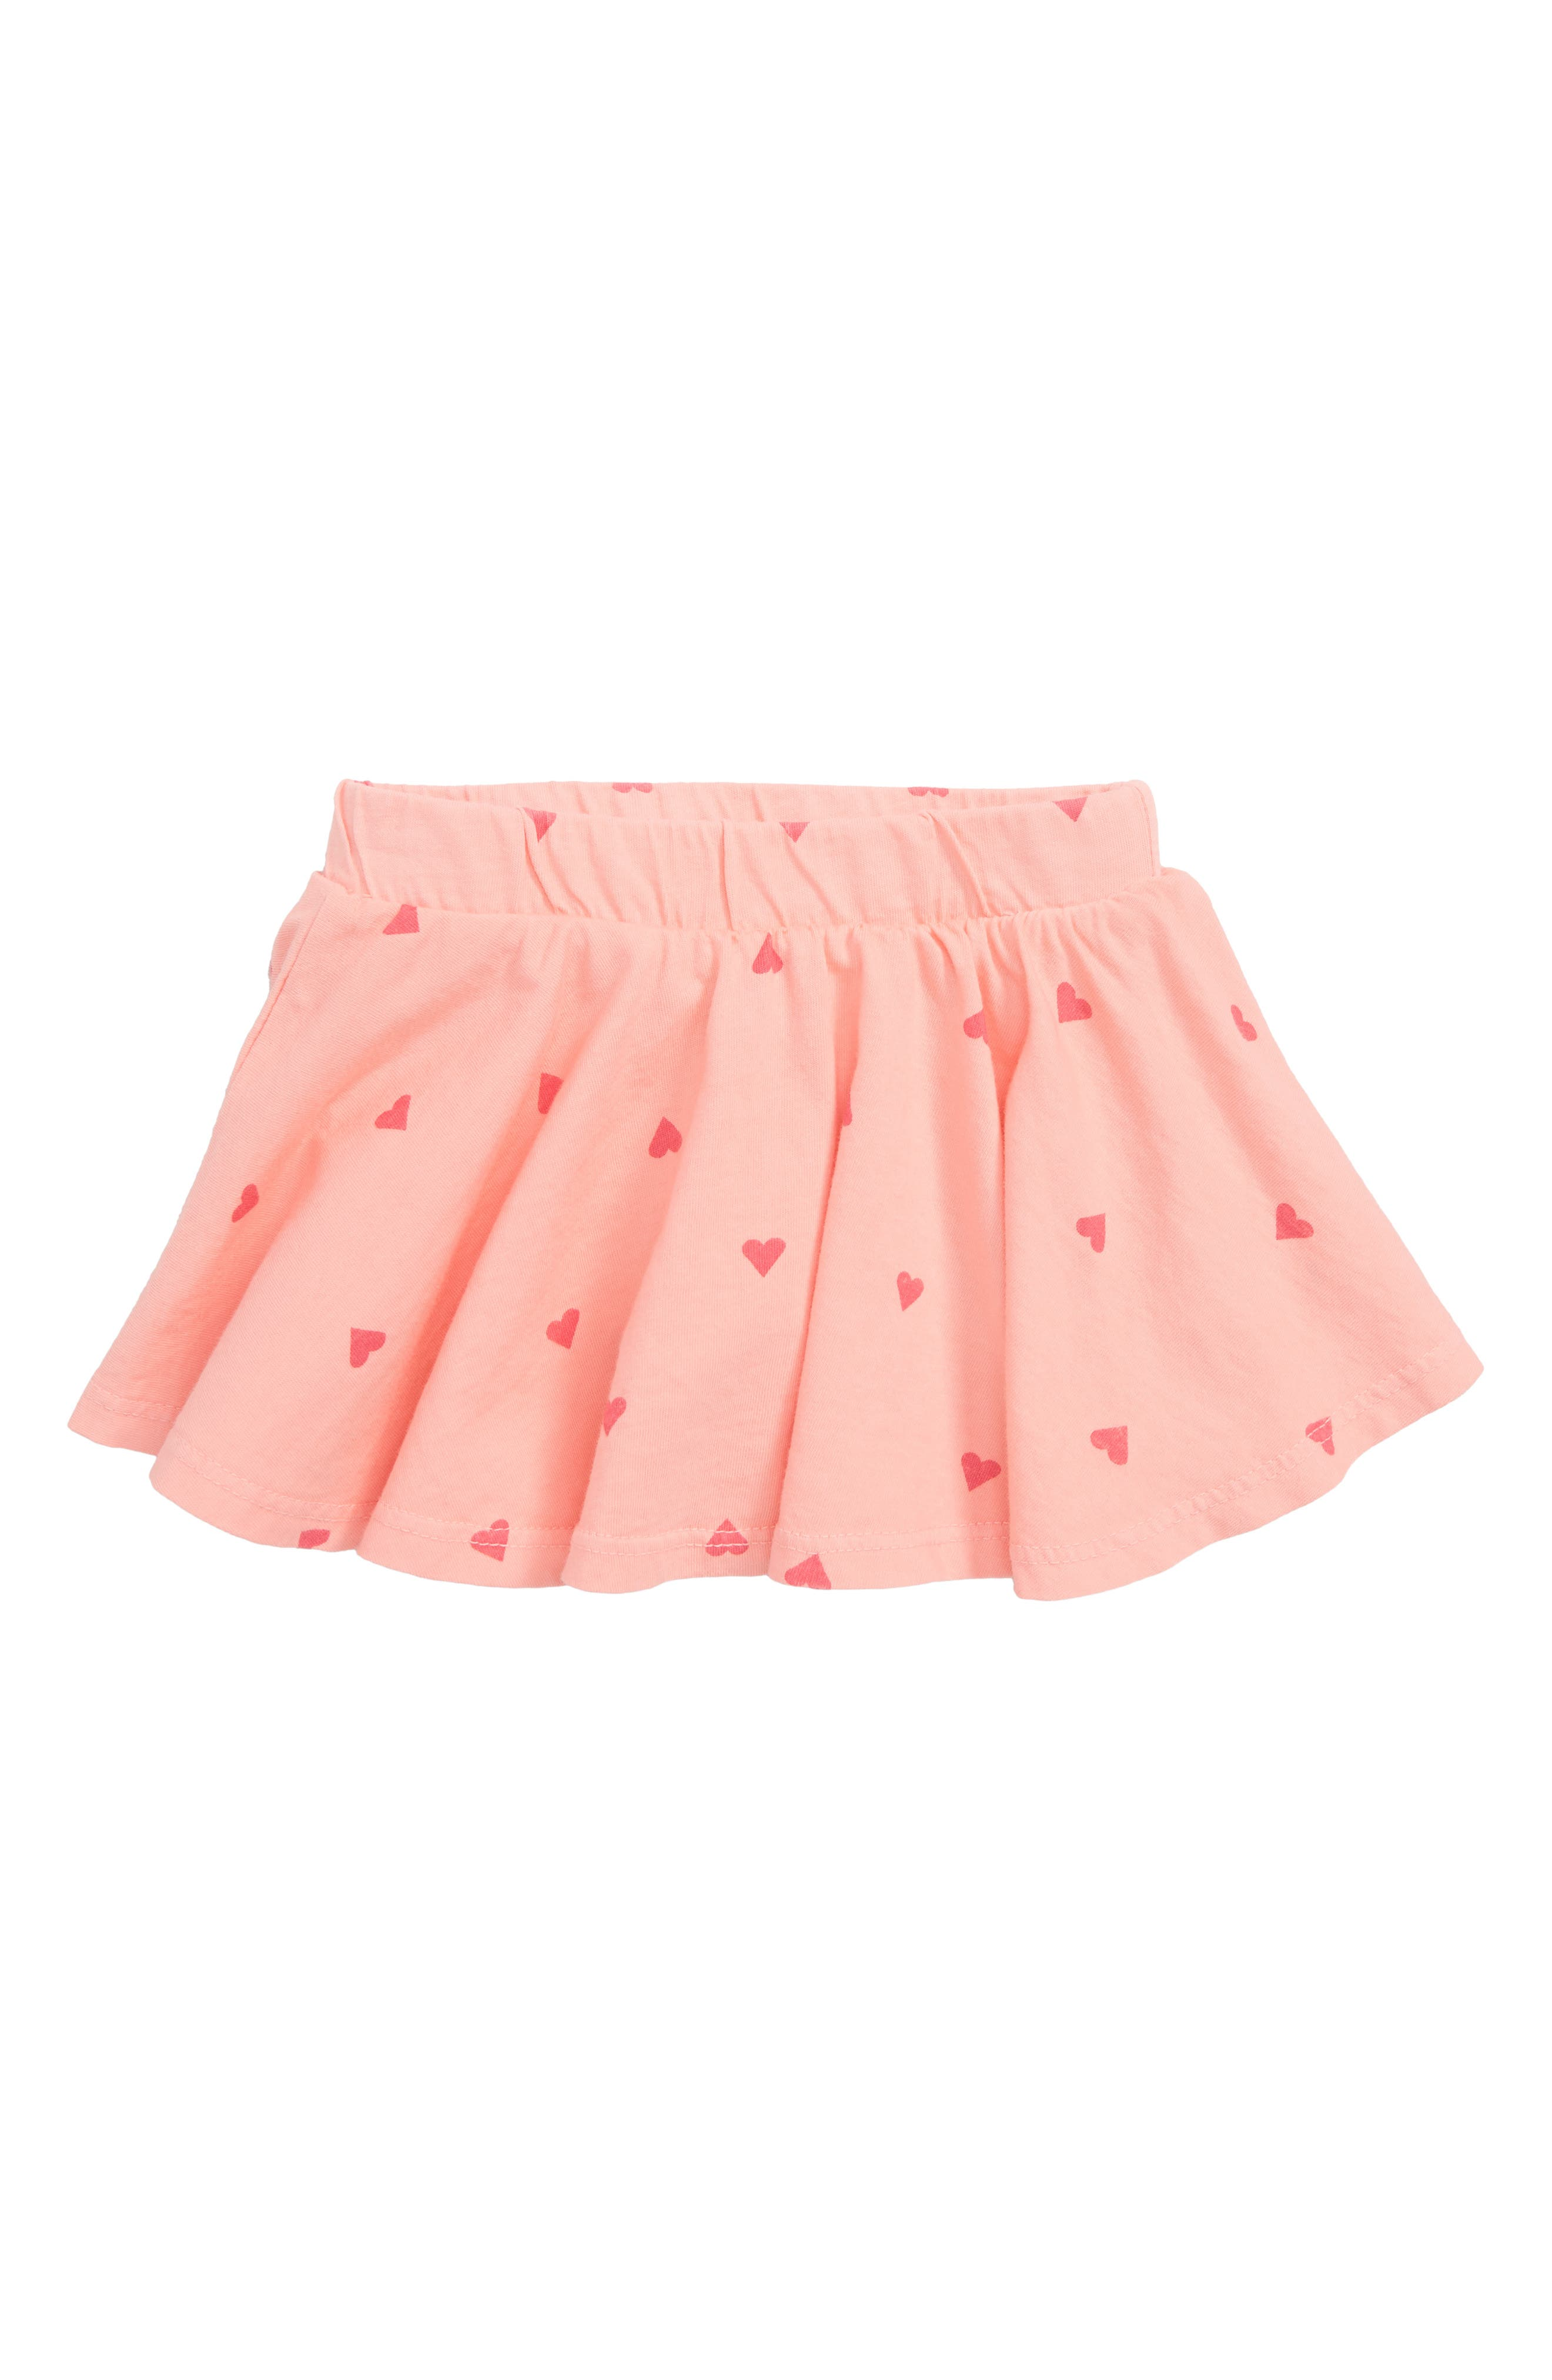 Infant Girls Joah Love Lyric Skort Size 3M  Pink